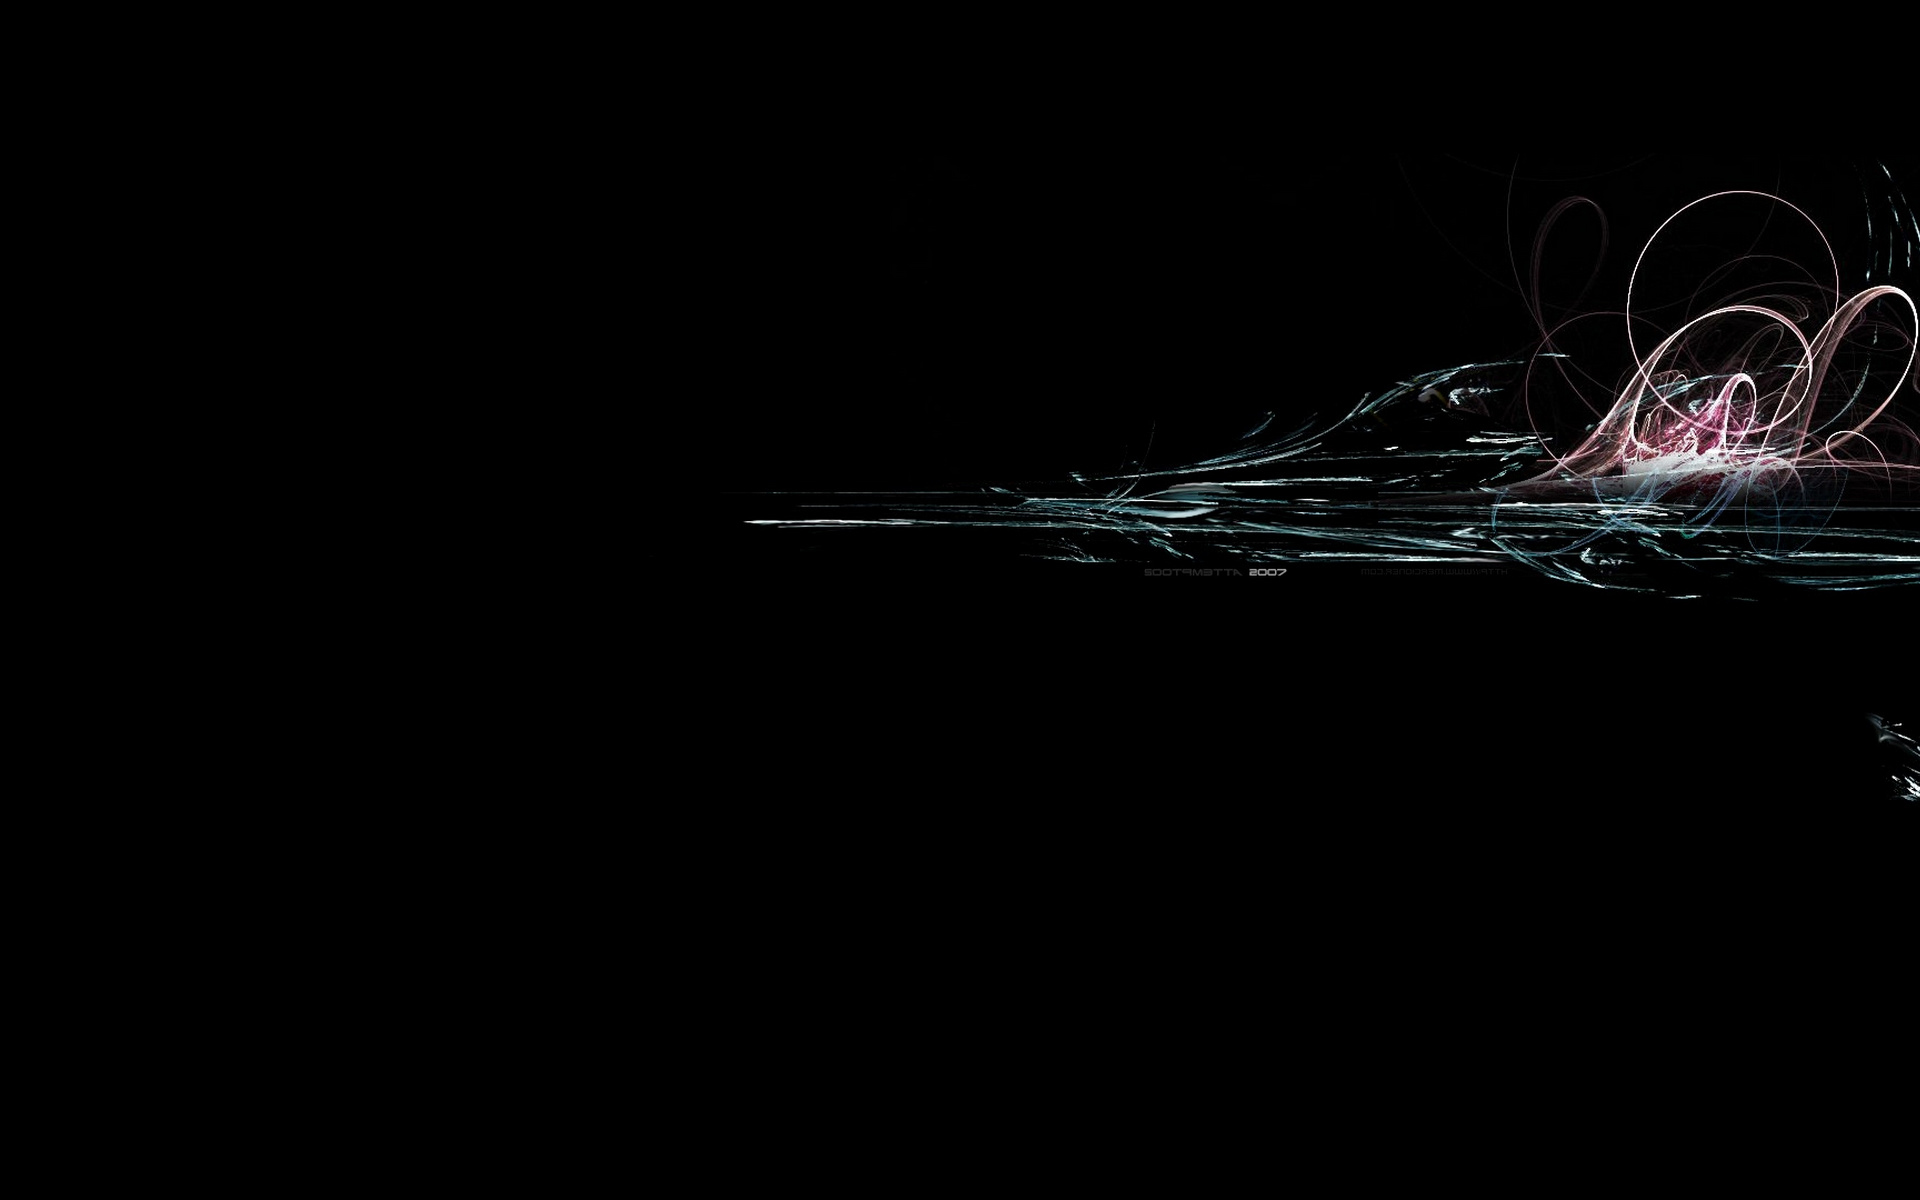 signature on a black background wallpapers55com   Best Wallpapers 1920x1200